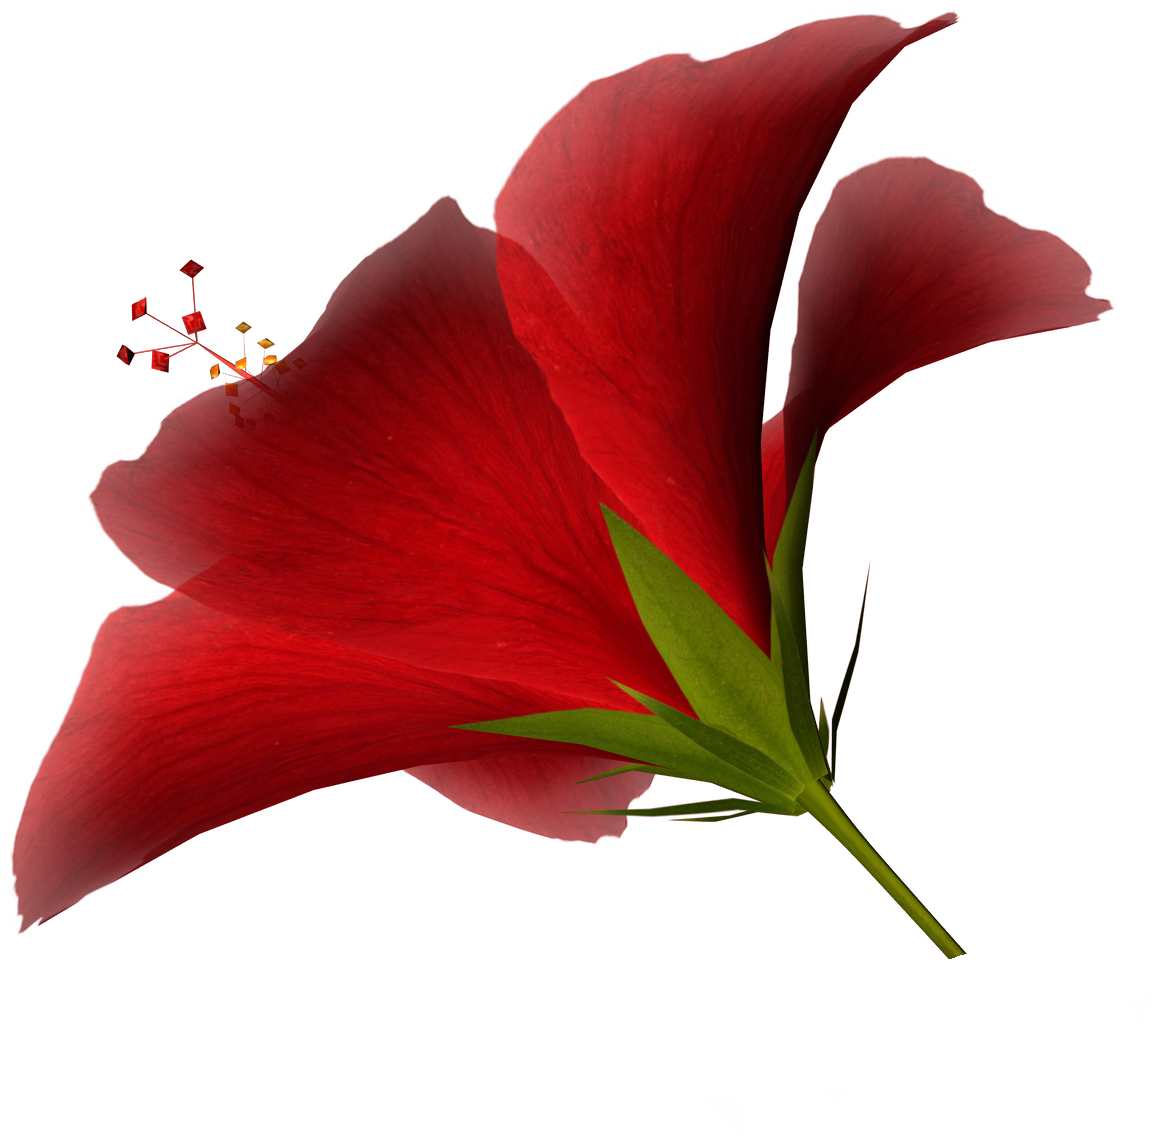 Red Flag With White Flower